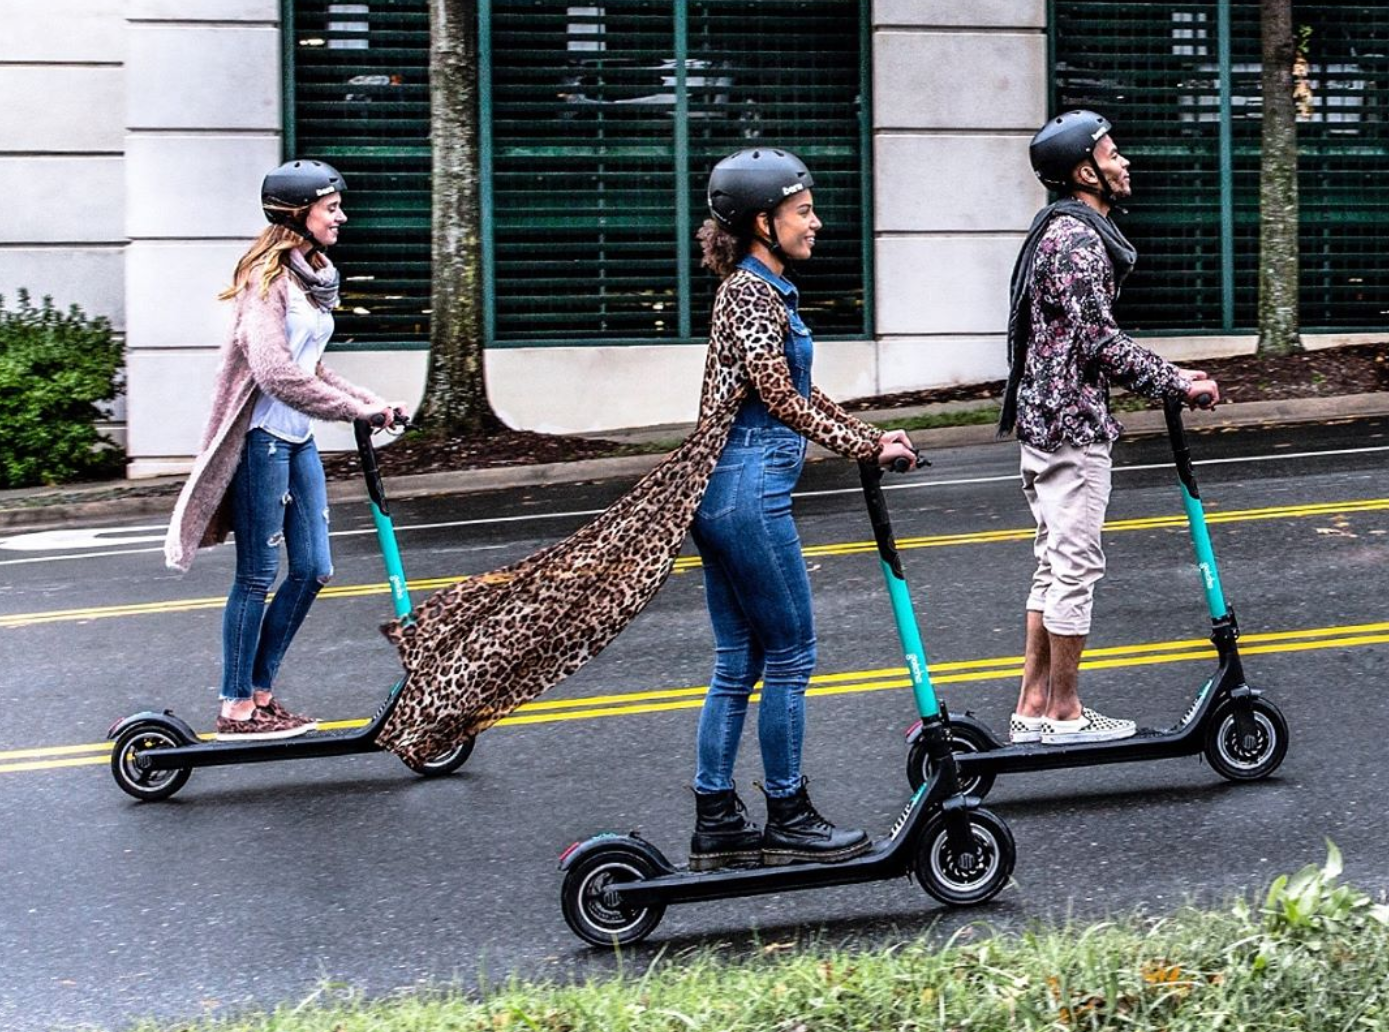 Two women and a man head to the right on turquoise-accented e-scooters.